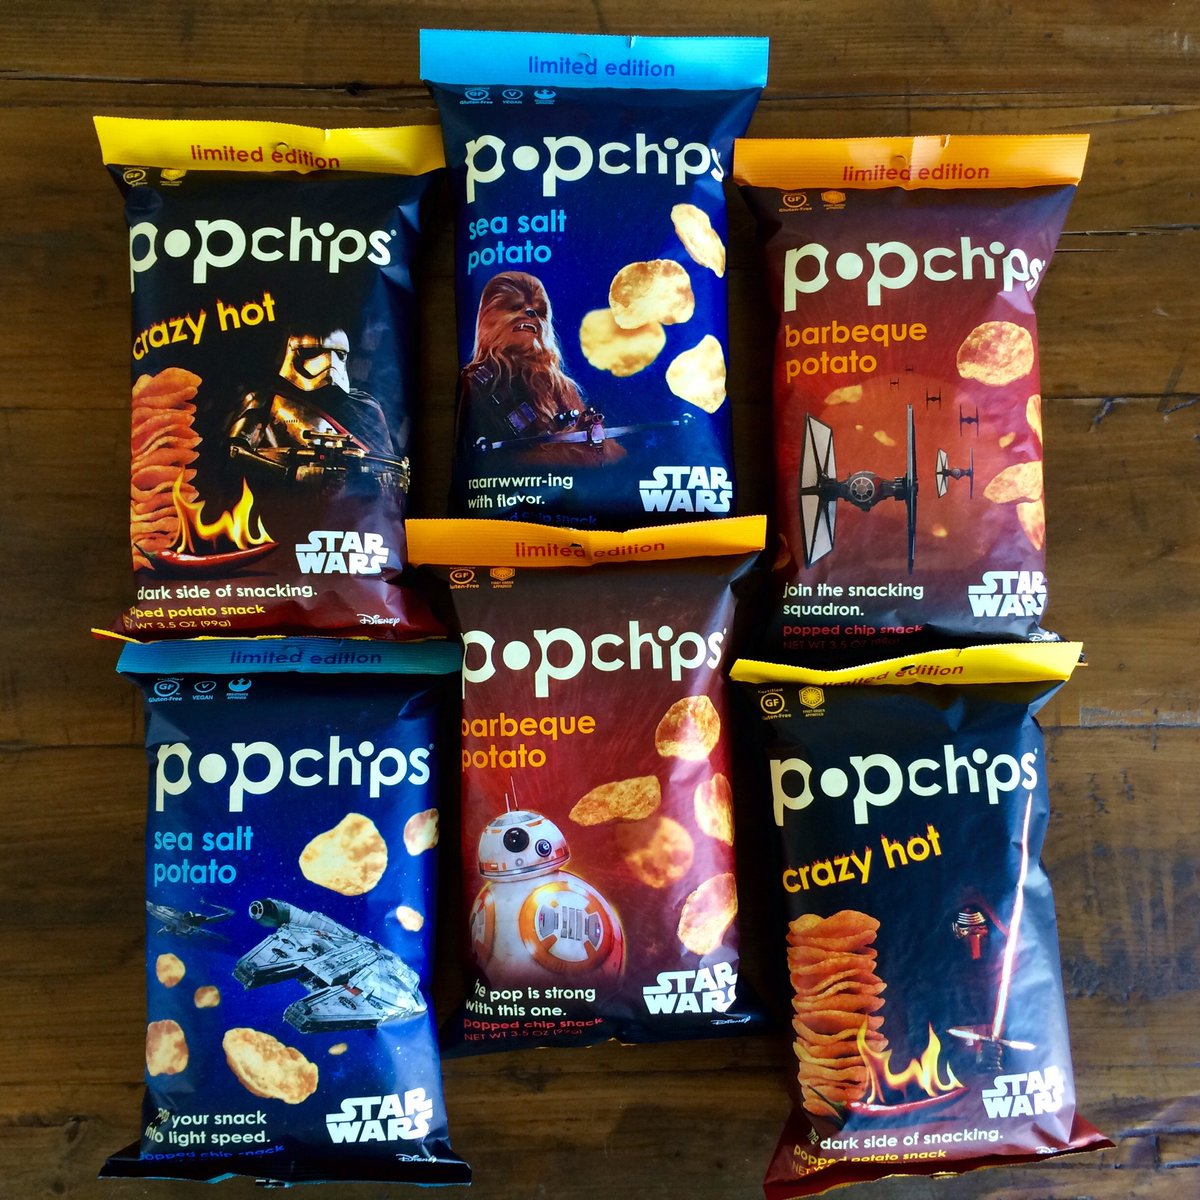 7 days til #TheForceAwakens. here's your chance to be snack ready.RT for a chance to win our LE #StarWars popchips! https://t.co/OyMCsZ7fUY